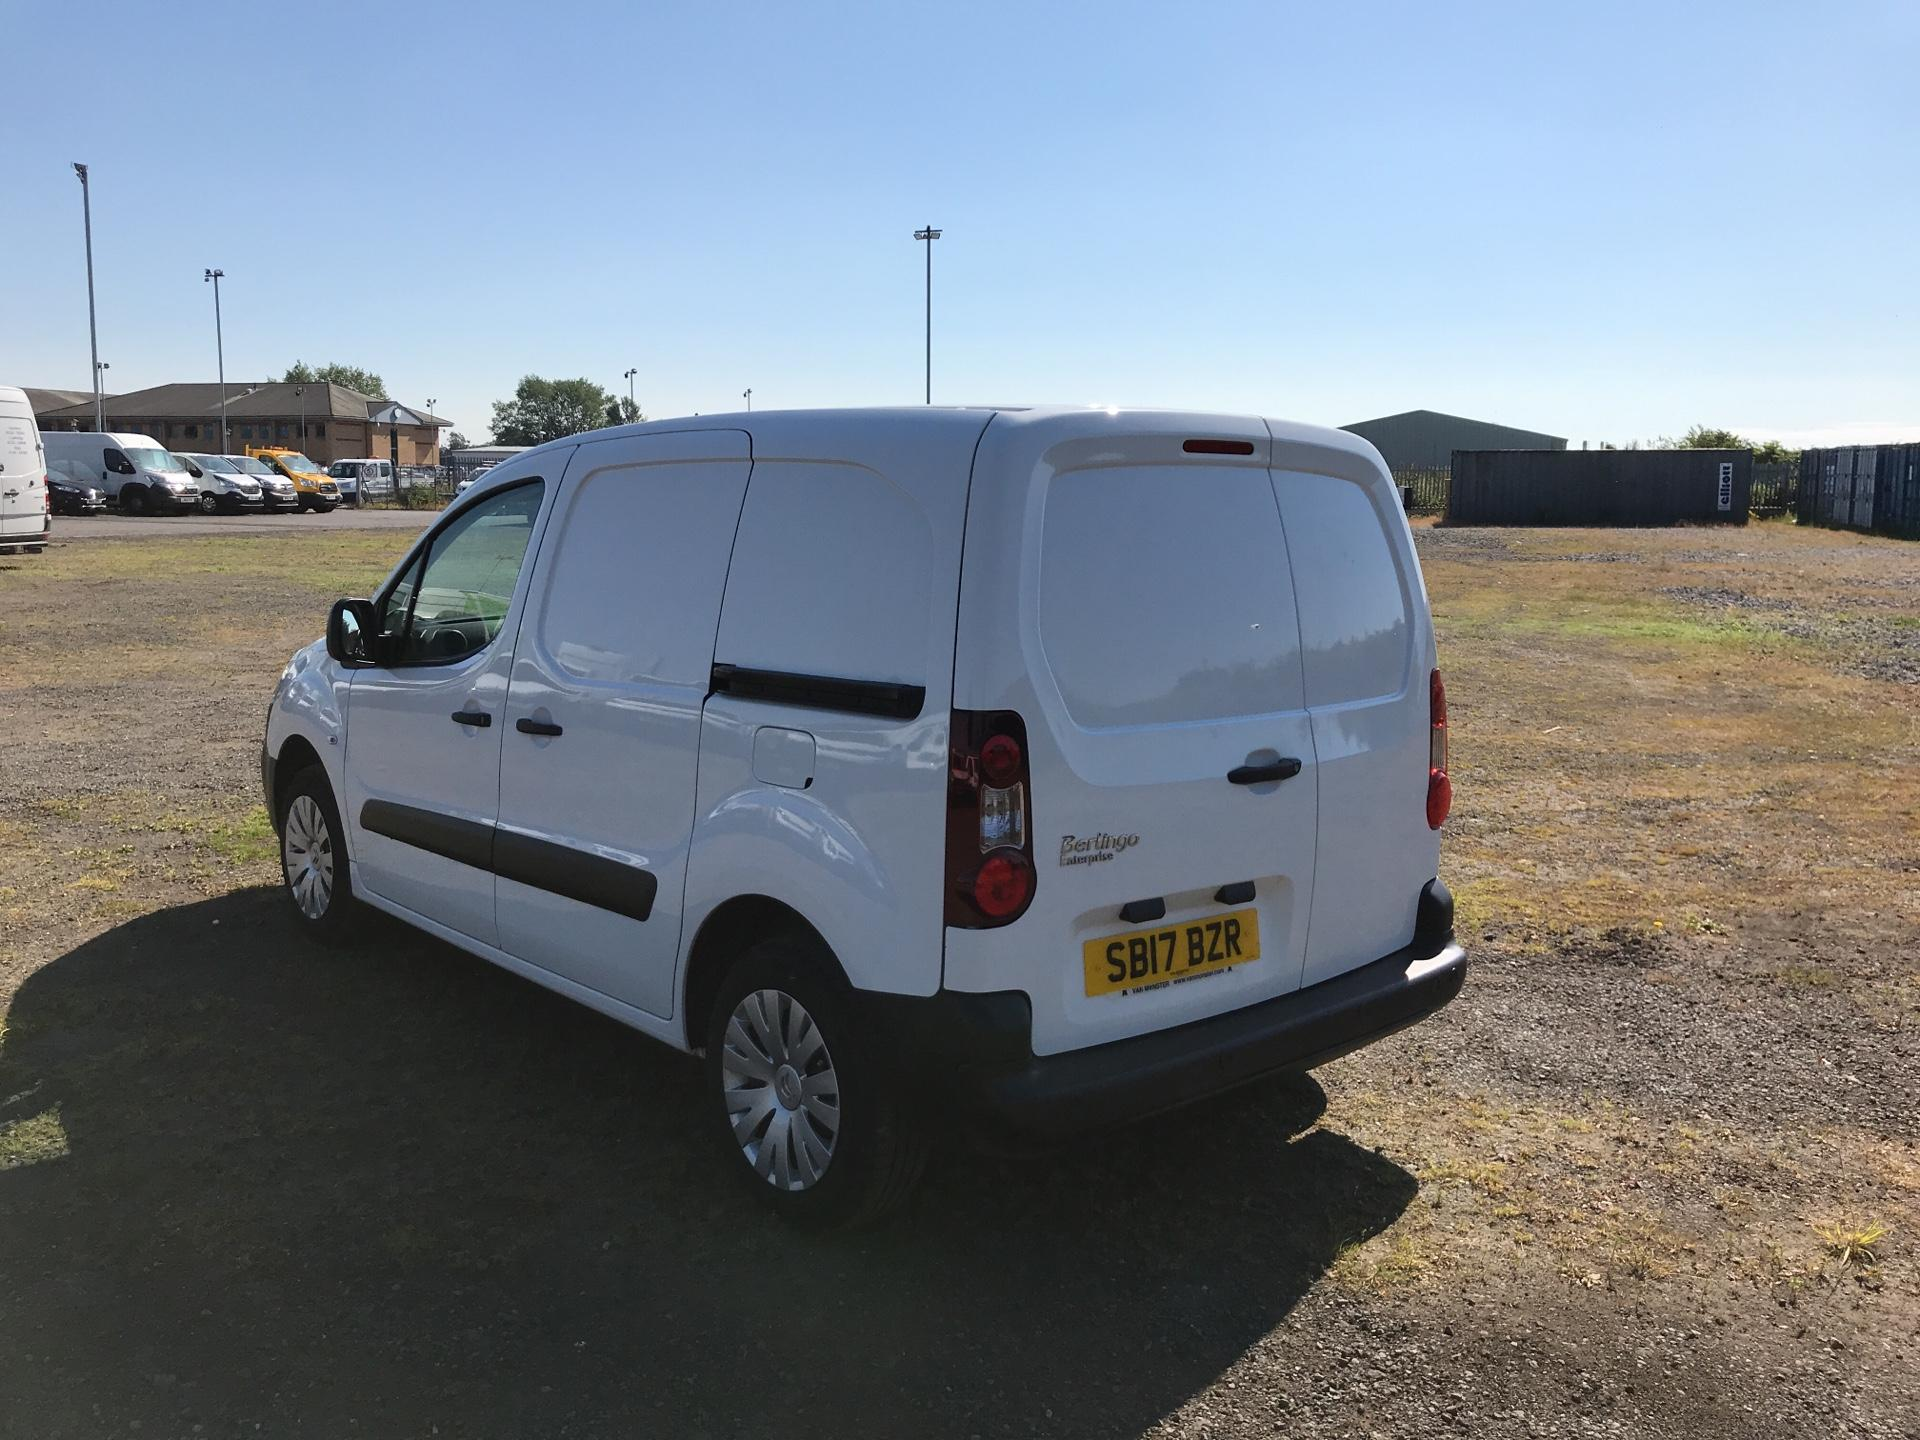 2017 Citroen Berlingo L1 1.6 Bluehdi 625Kg Enterprise 75Ps EURO 4/5 (SB17BZR) Image 5